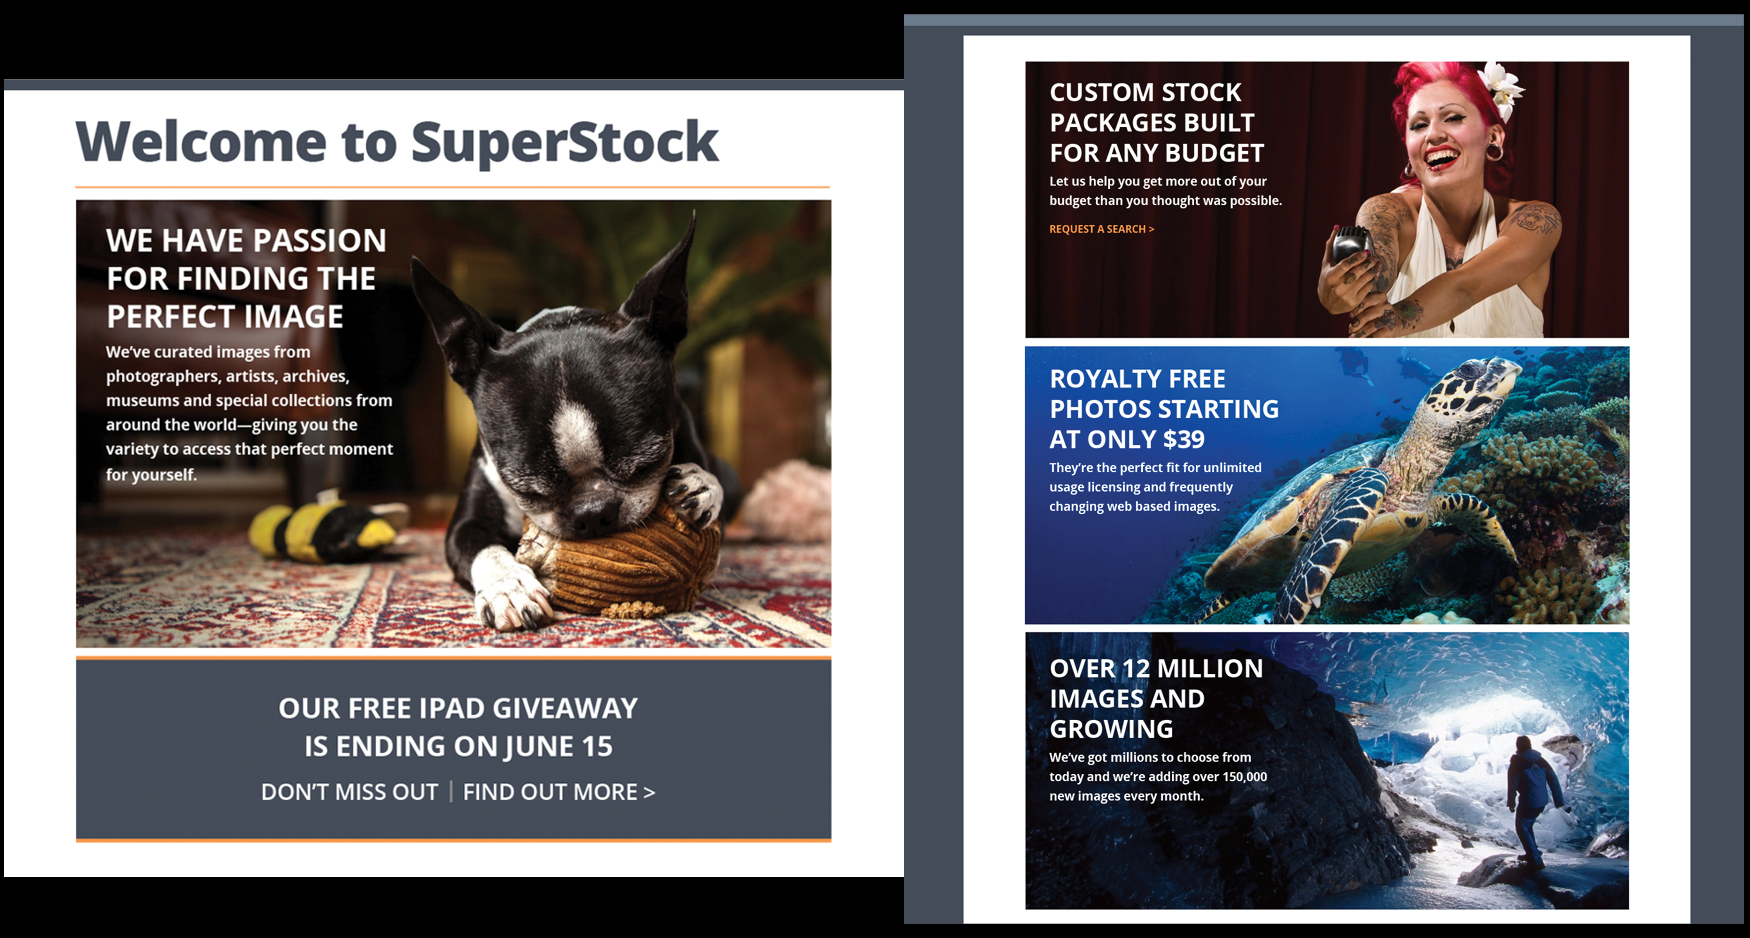 micro - SUPERSTOCK - CAMPAIGN LANDING PAGES